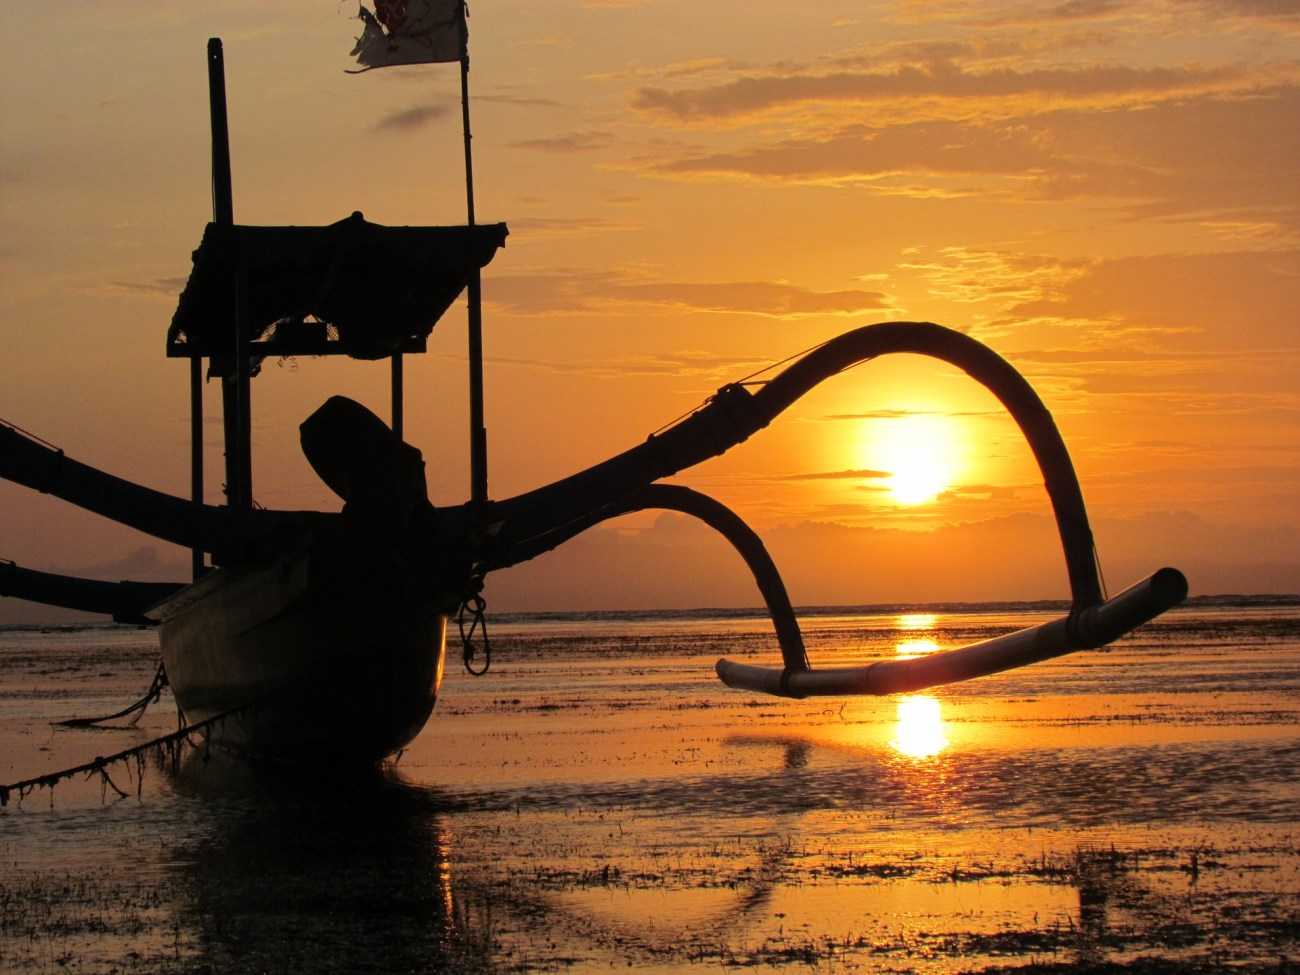 Sunrise in Sanur, Bali, Indonesia